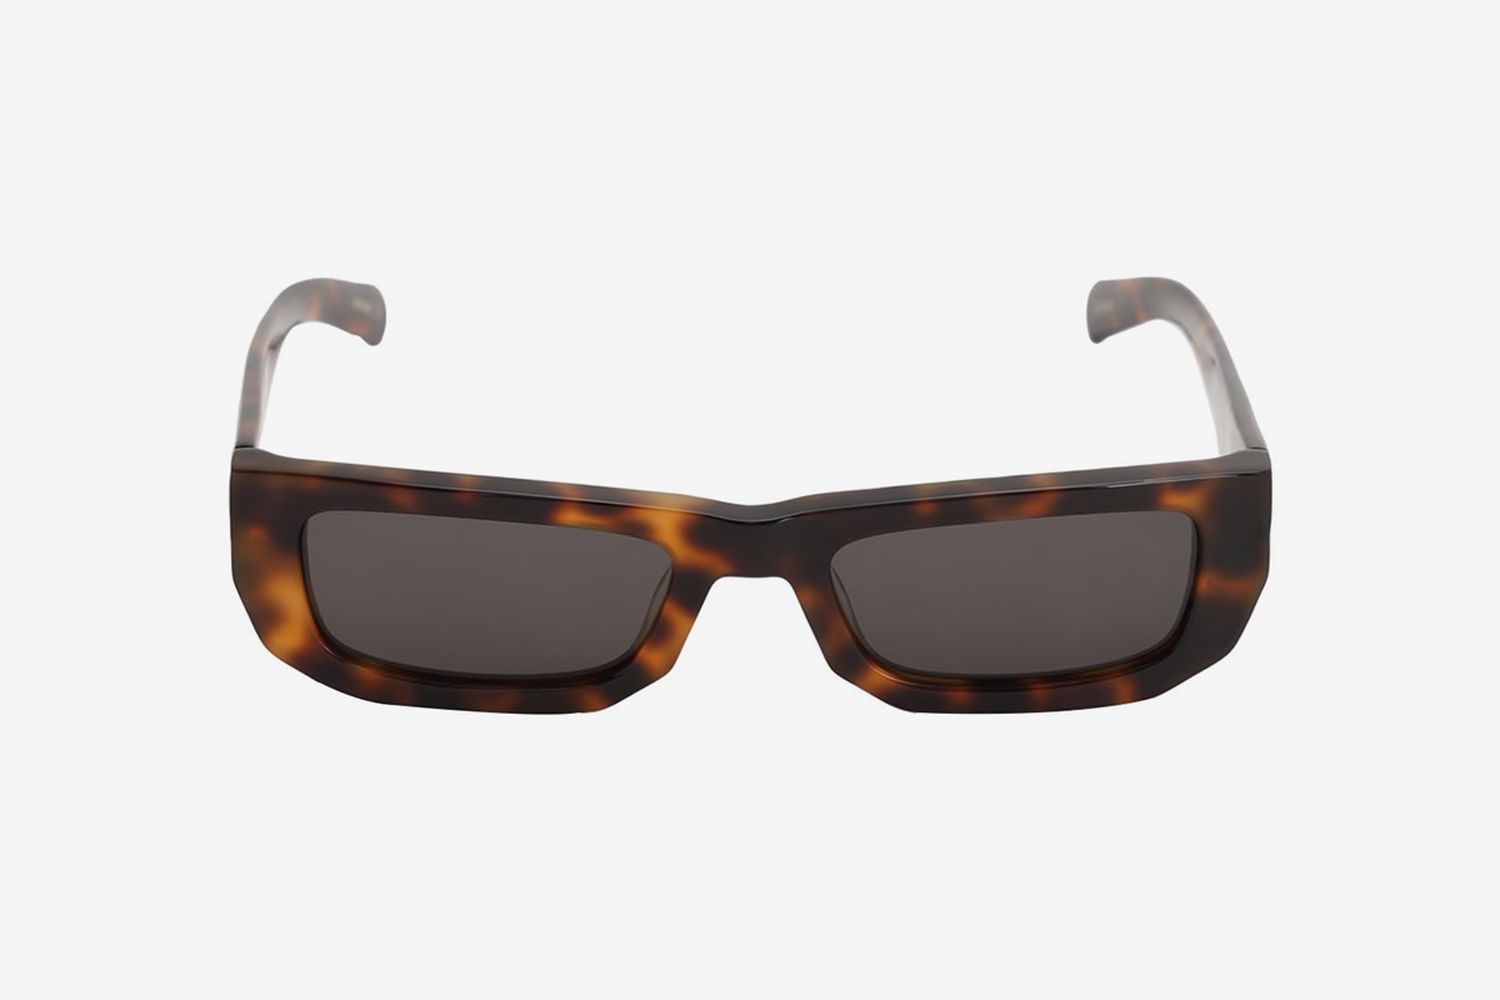 Brciktop Sunglasses